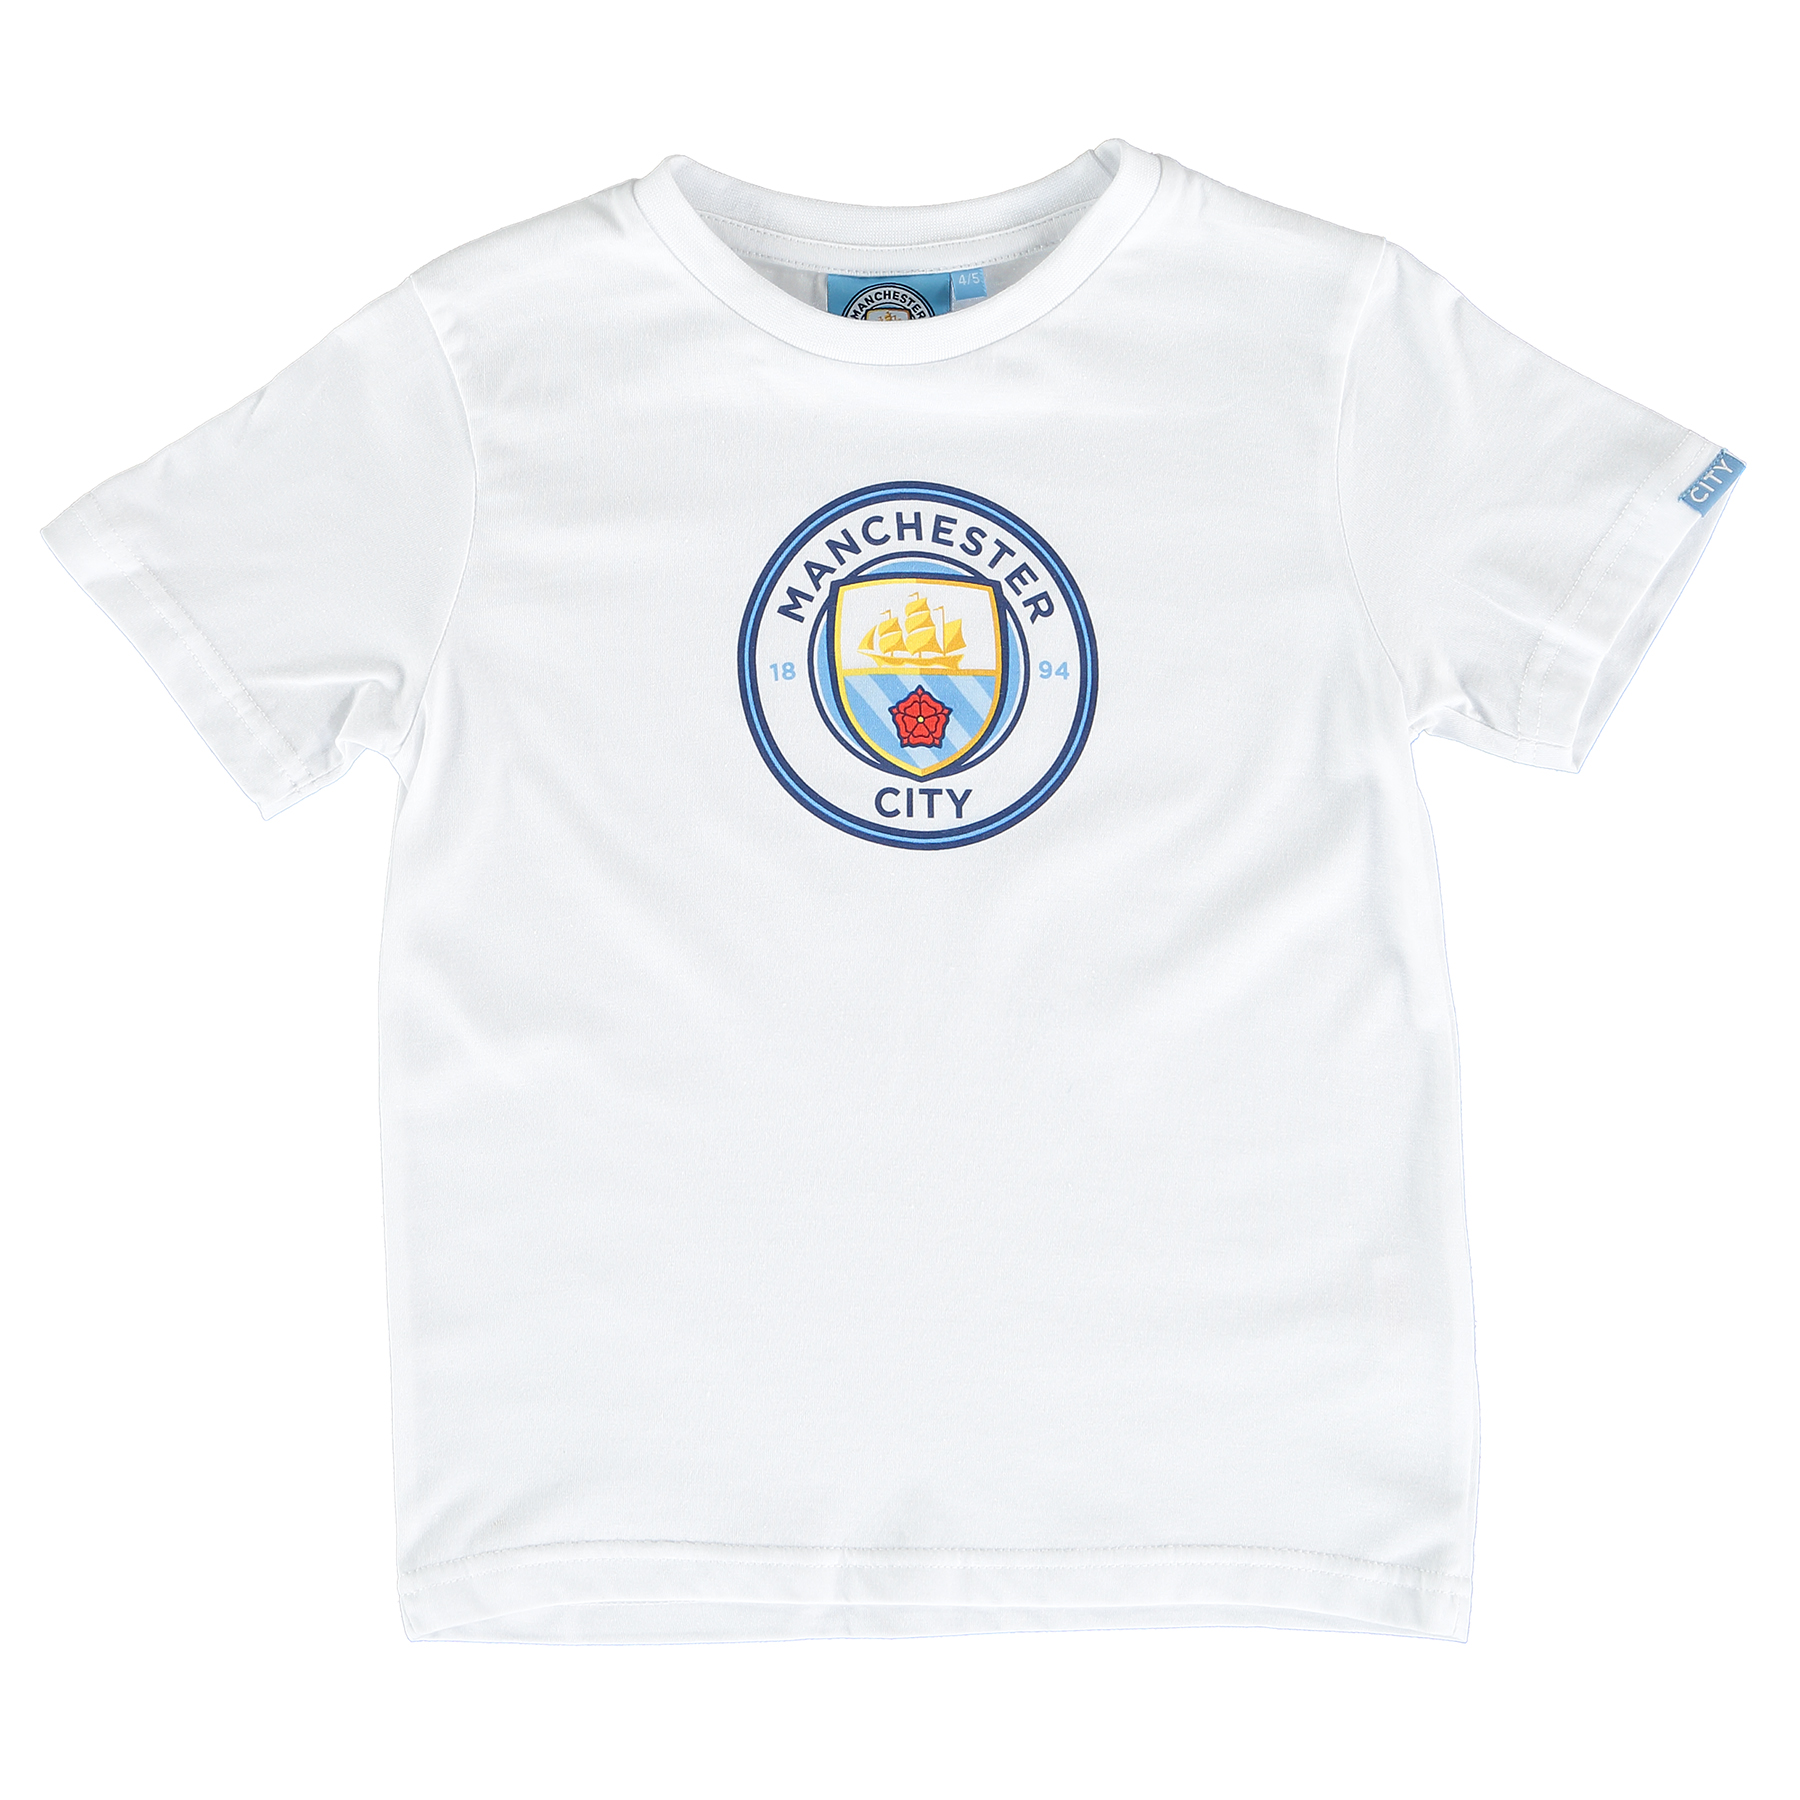 Manchester City Printed Crest T-Shirt - White - Junior